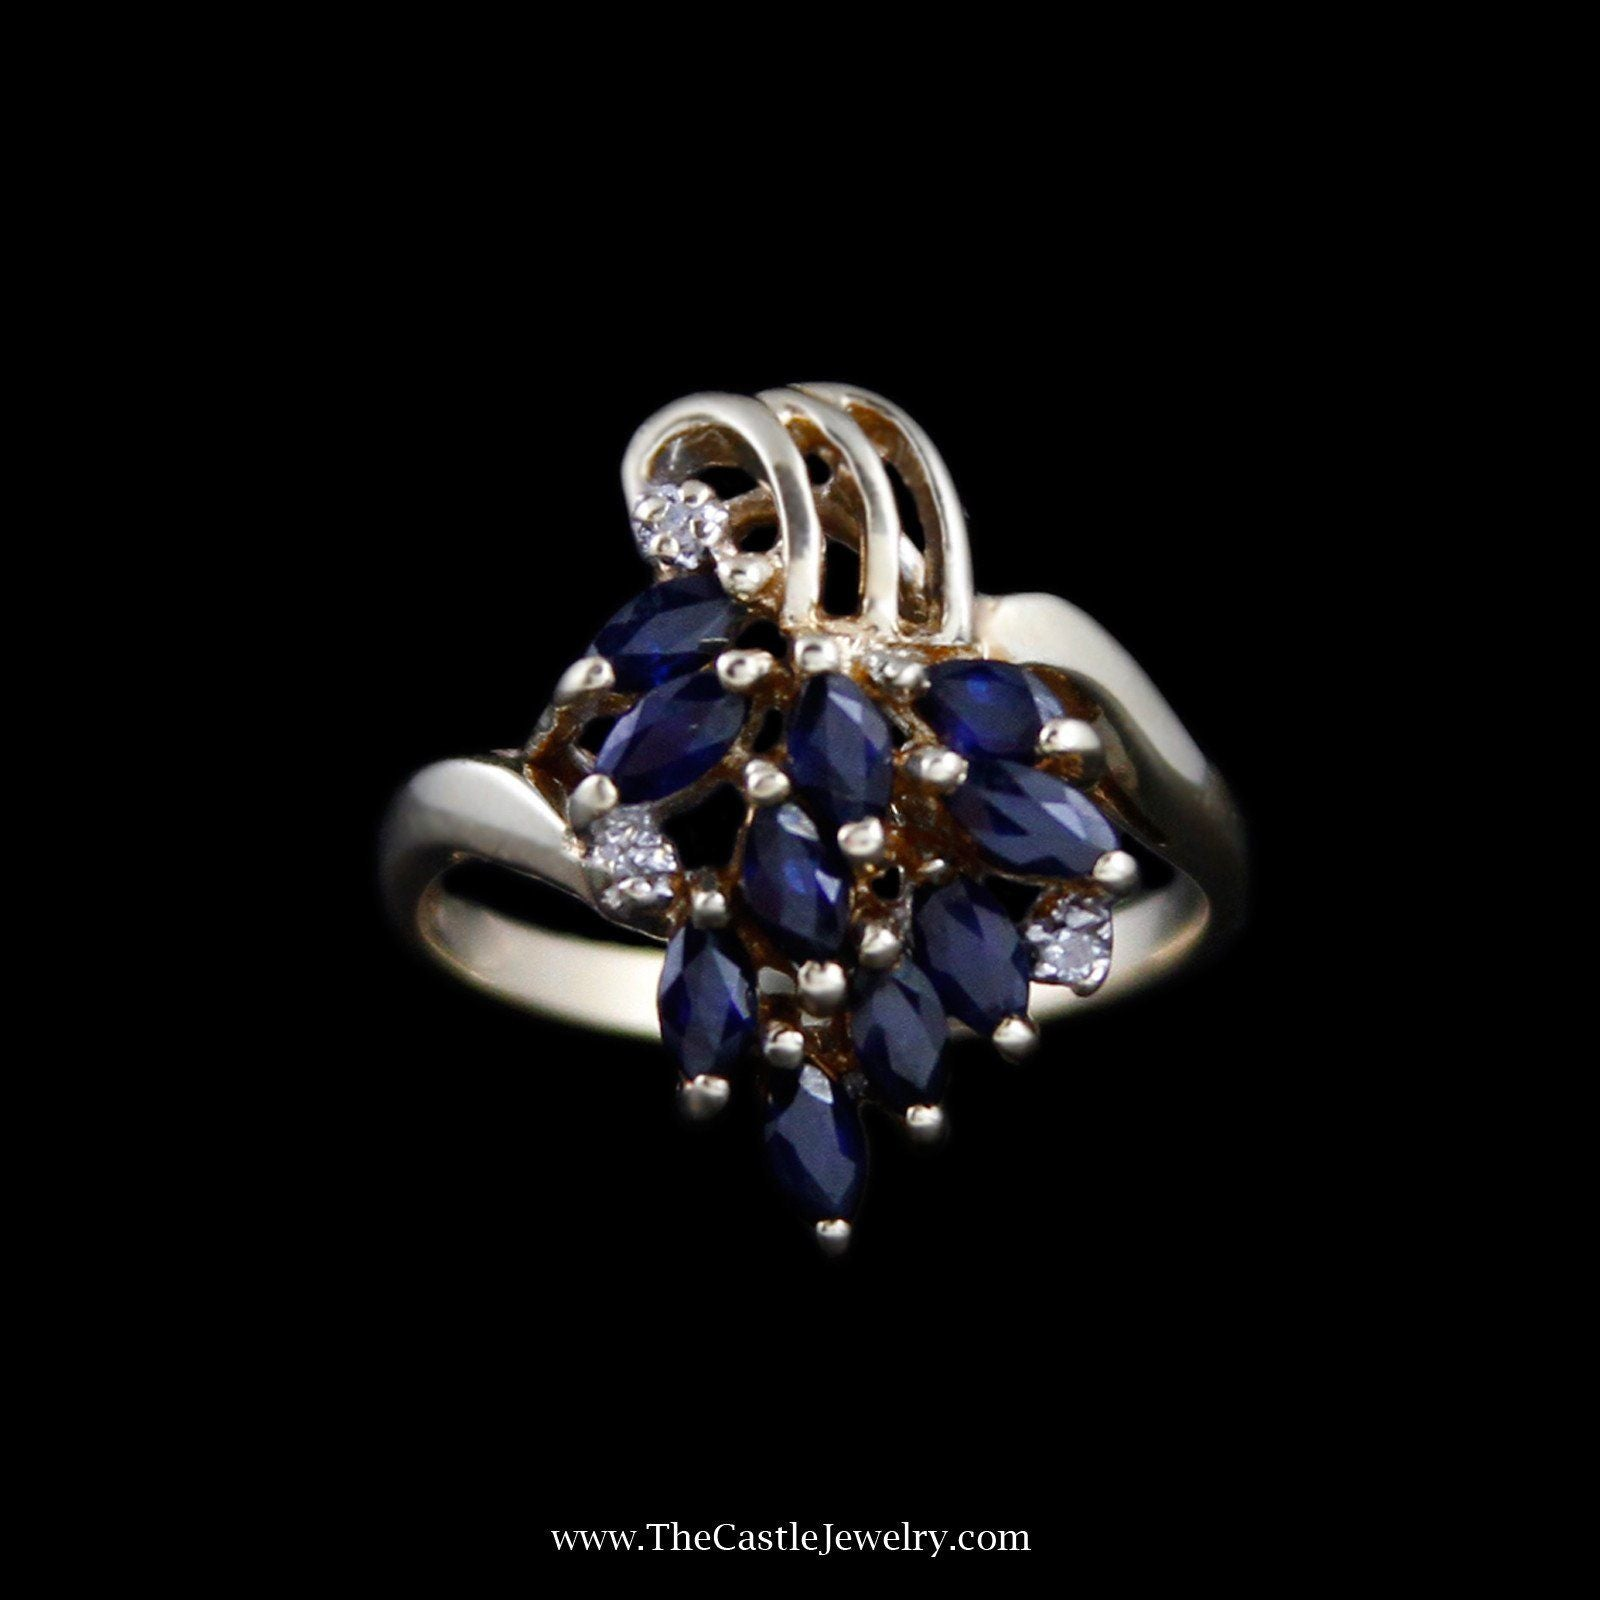 Charming Marquise Sapphire Cluster Ring with Diamond Accents in 10k Yellow Gold